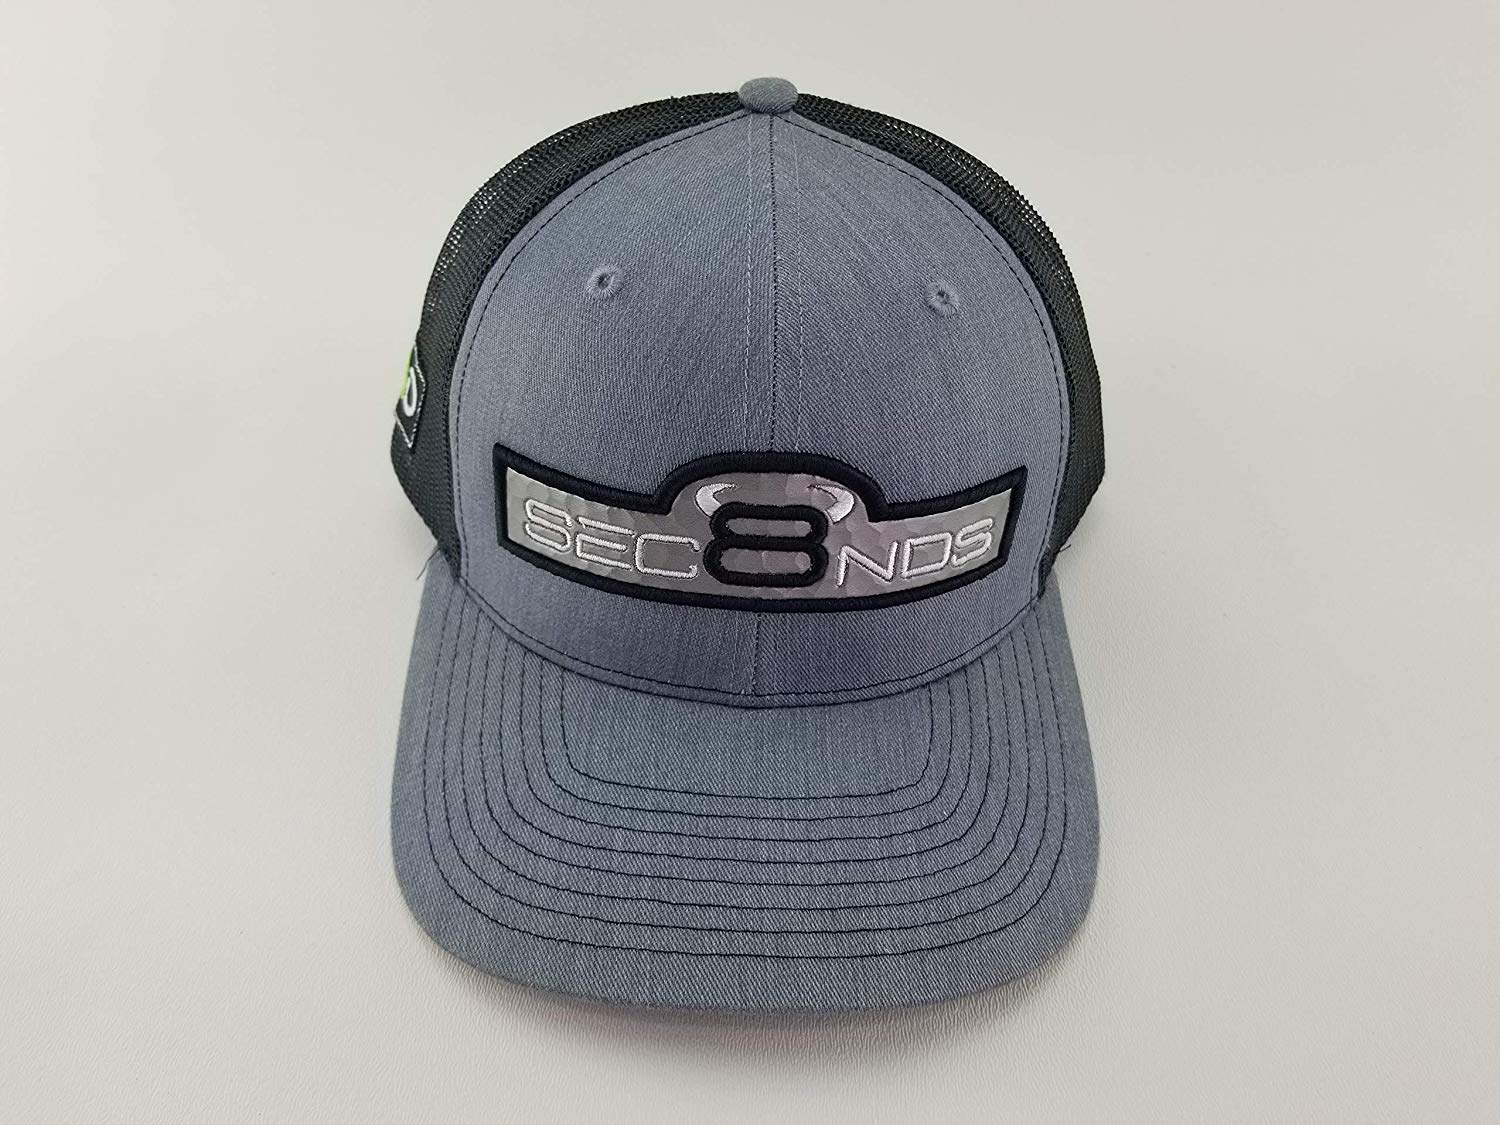 fd8bf8d6f79 Get Quotations · bull riding hat